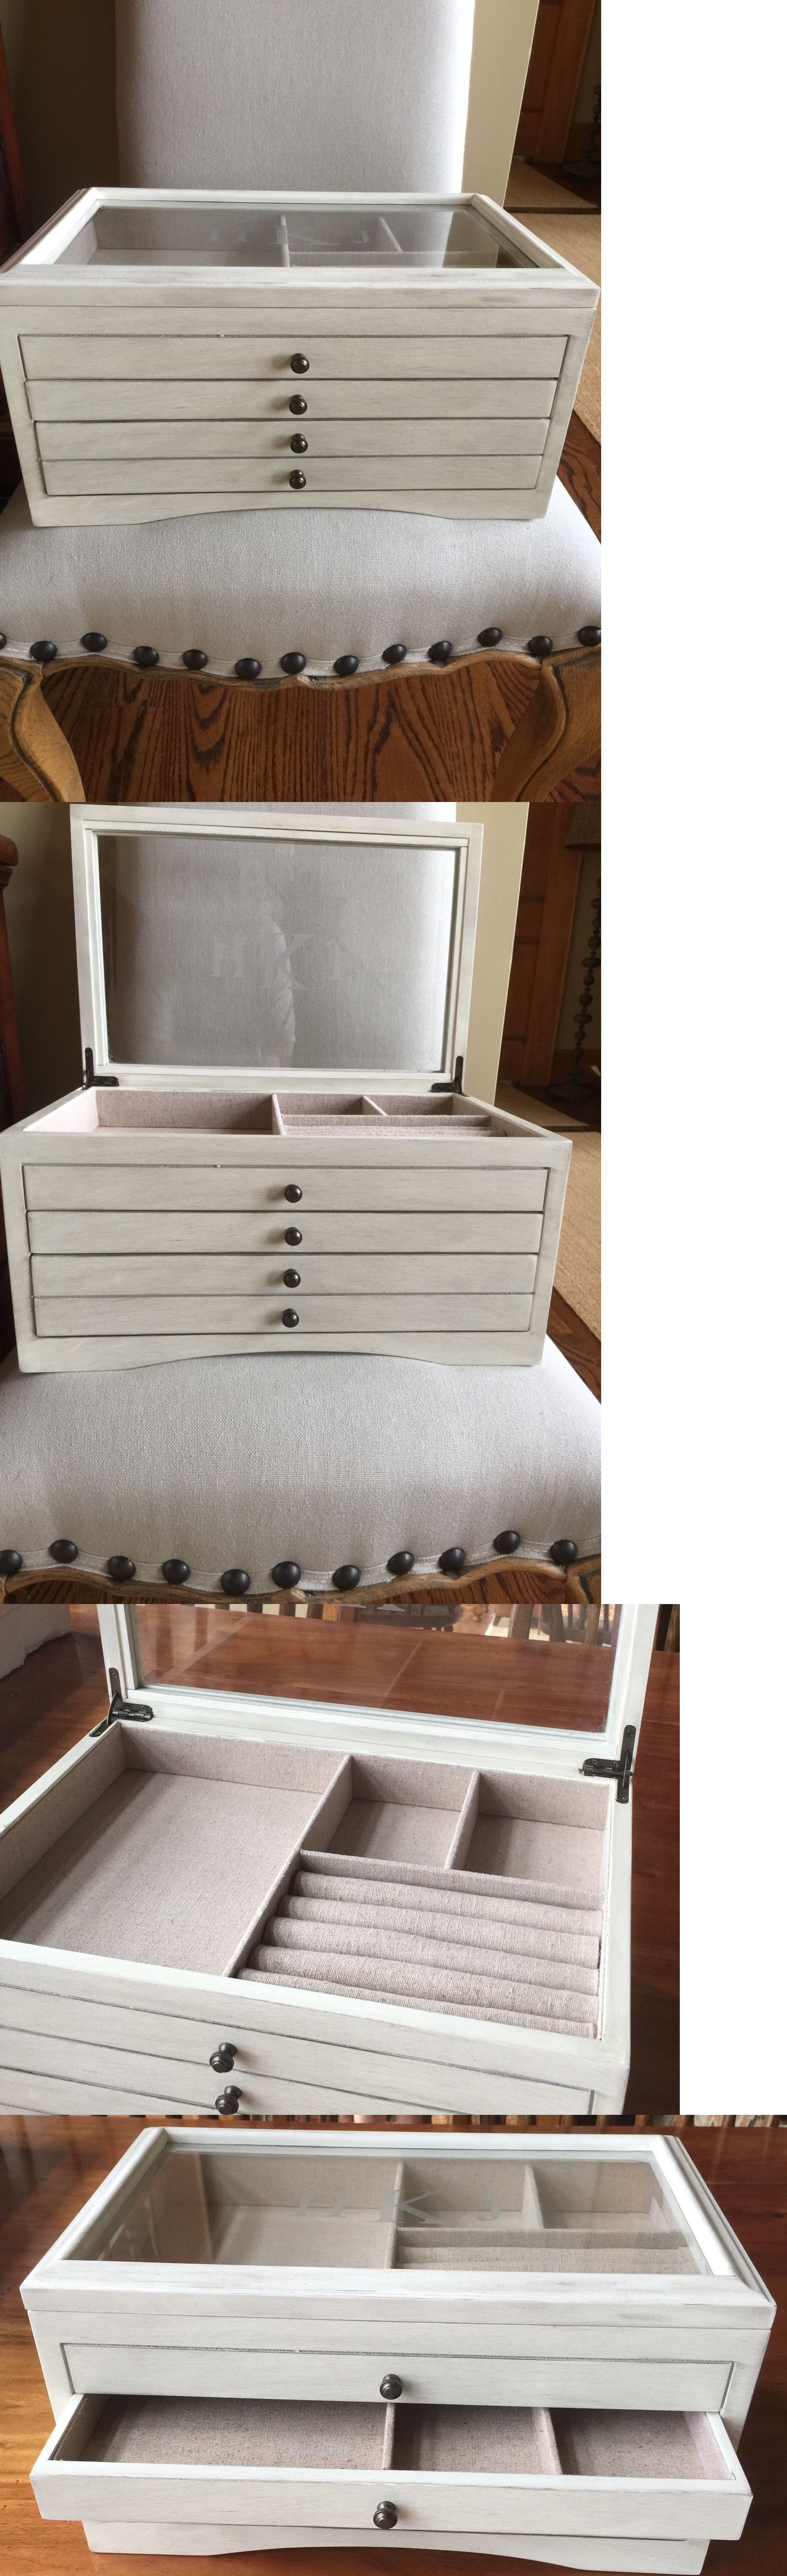 Jewelry Boxes 3820 Pottery Barn Andover Jewelry Box Ivory Stain